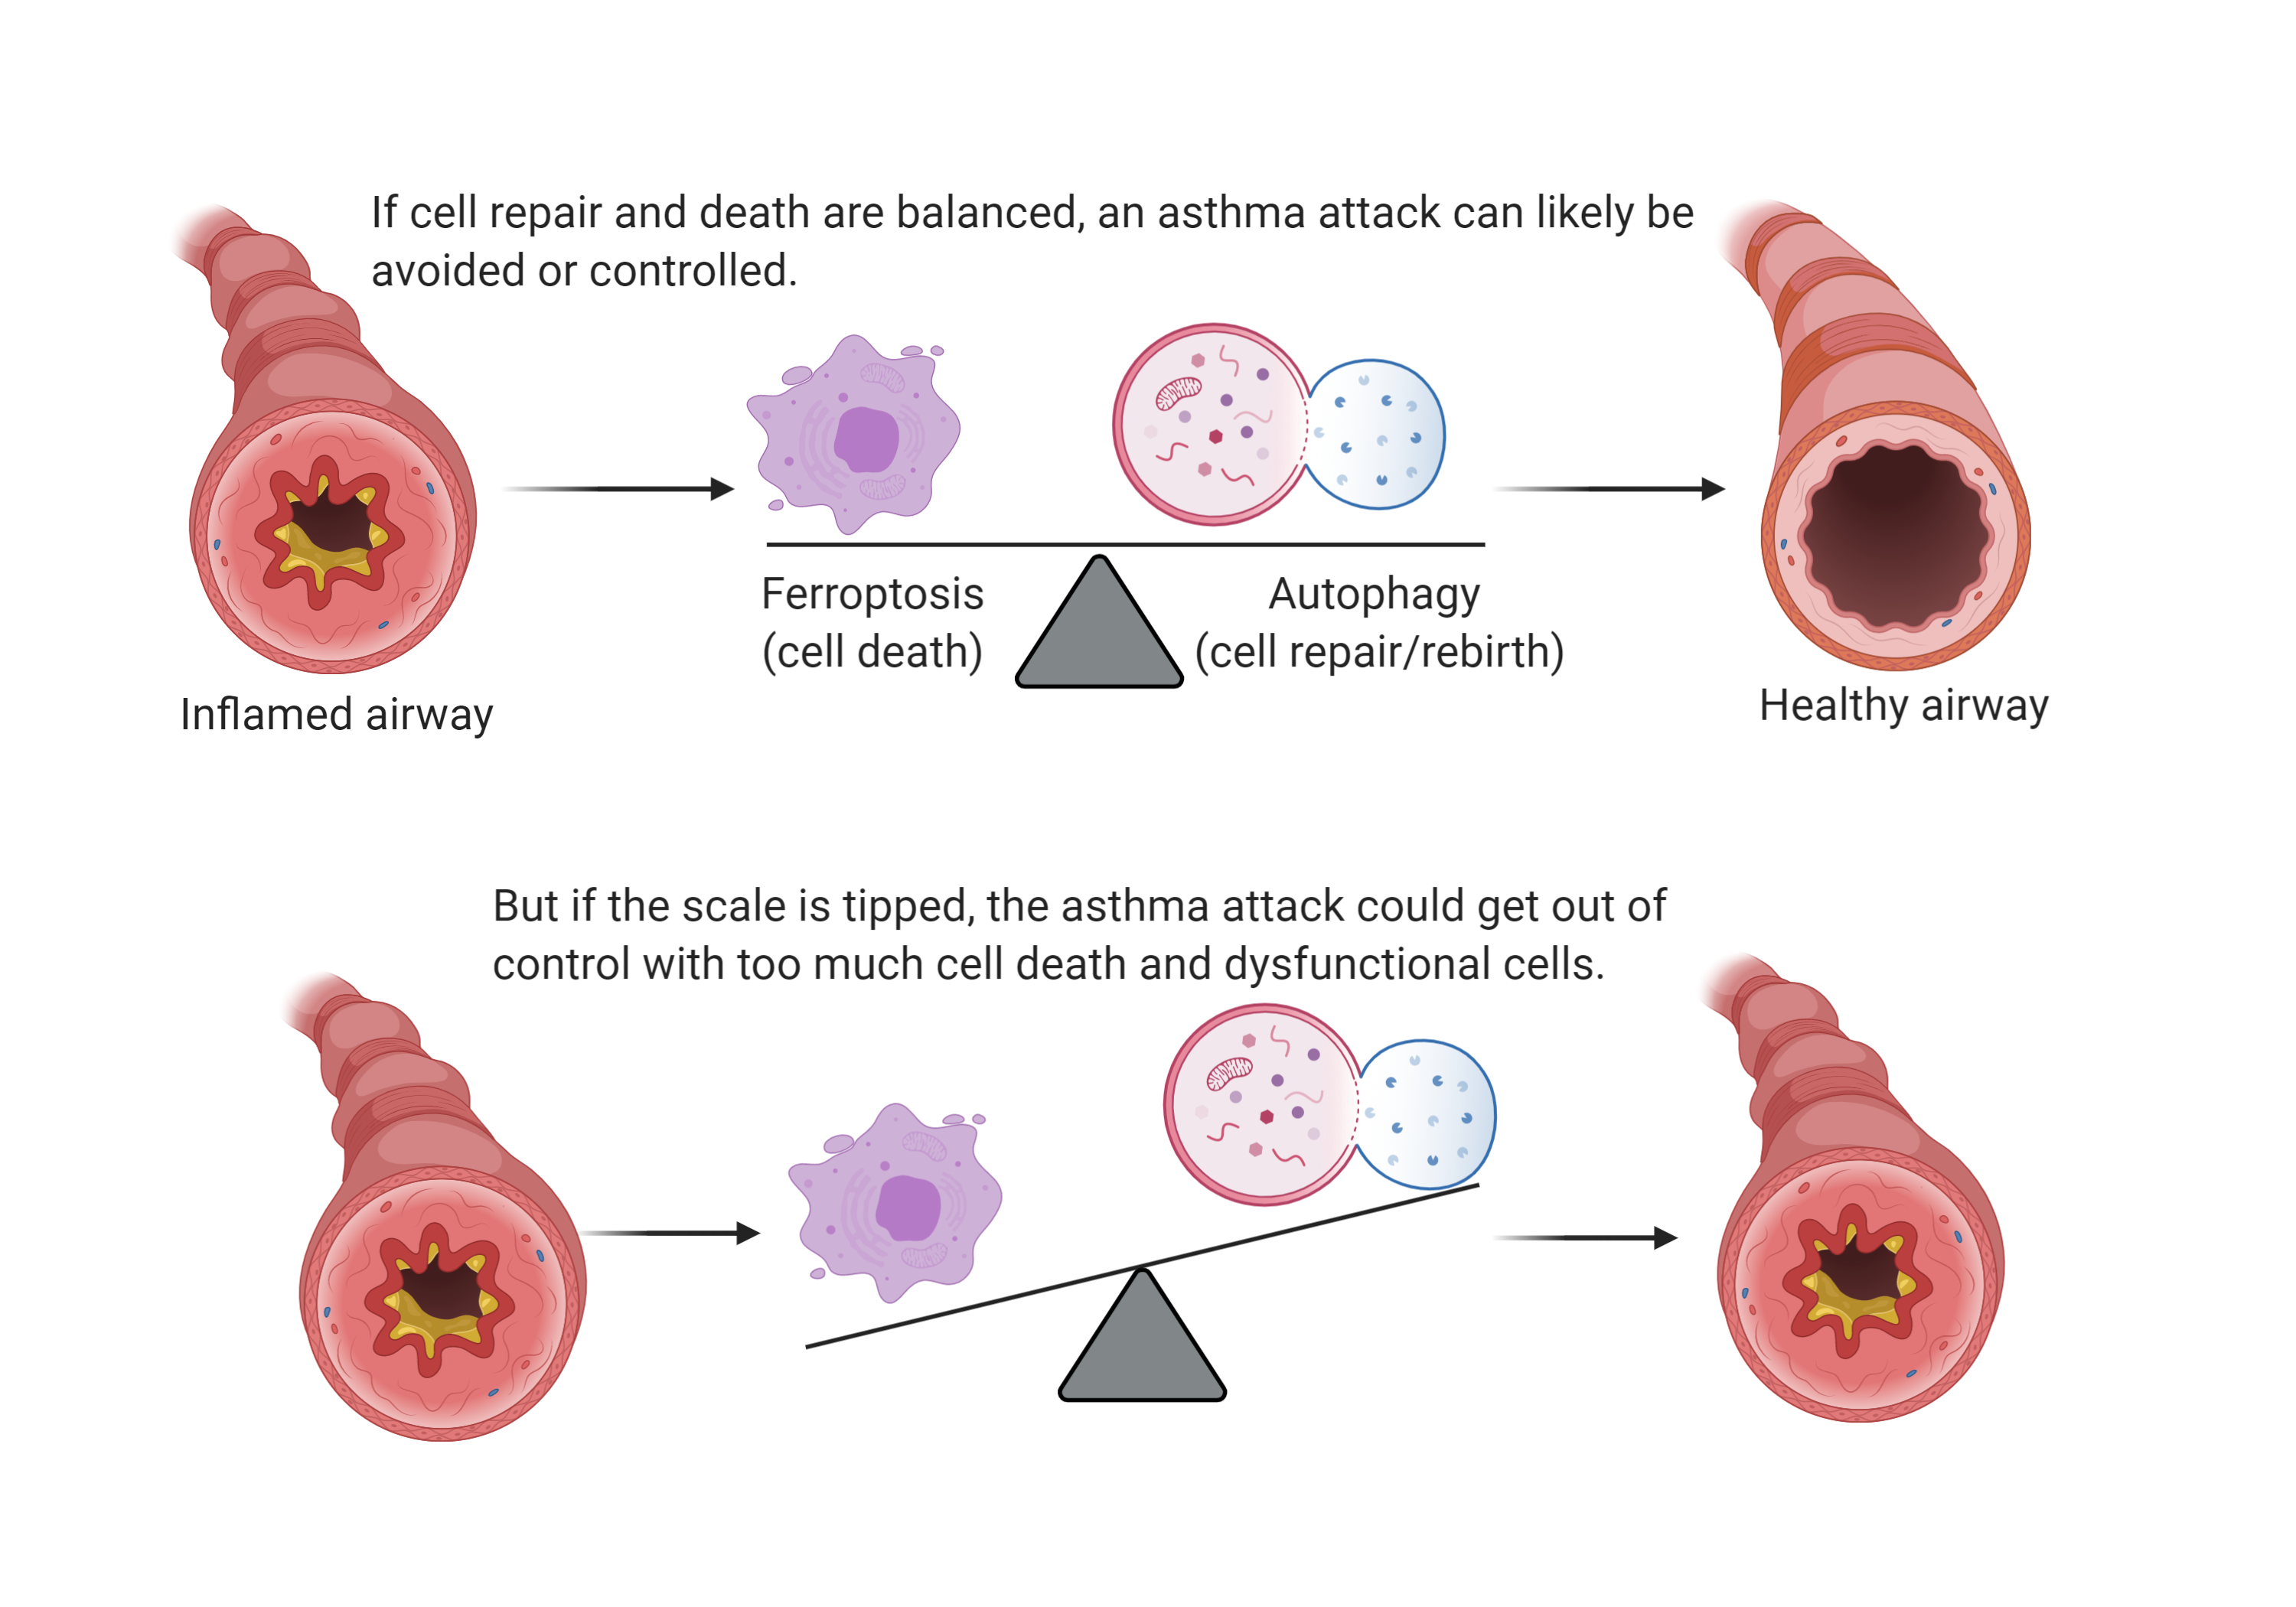 Diagram detailing the balance of cell death compared to cell repair and its link to inflamed and healthy airways.